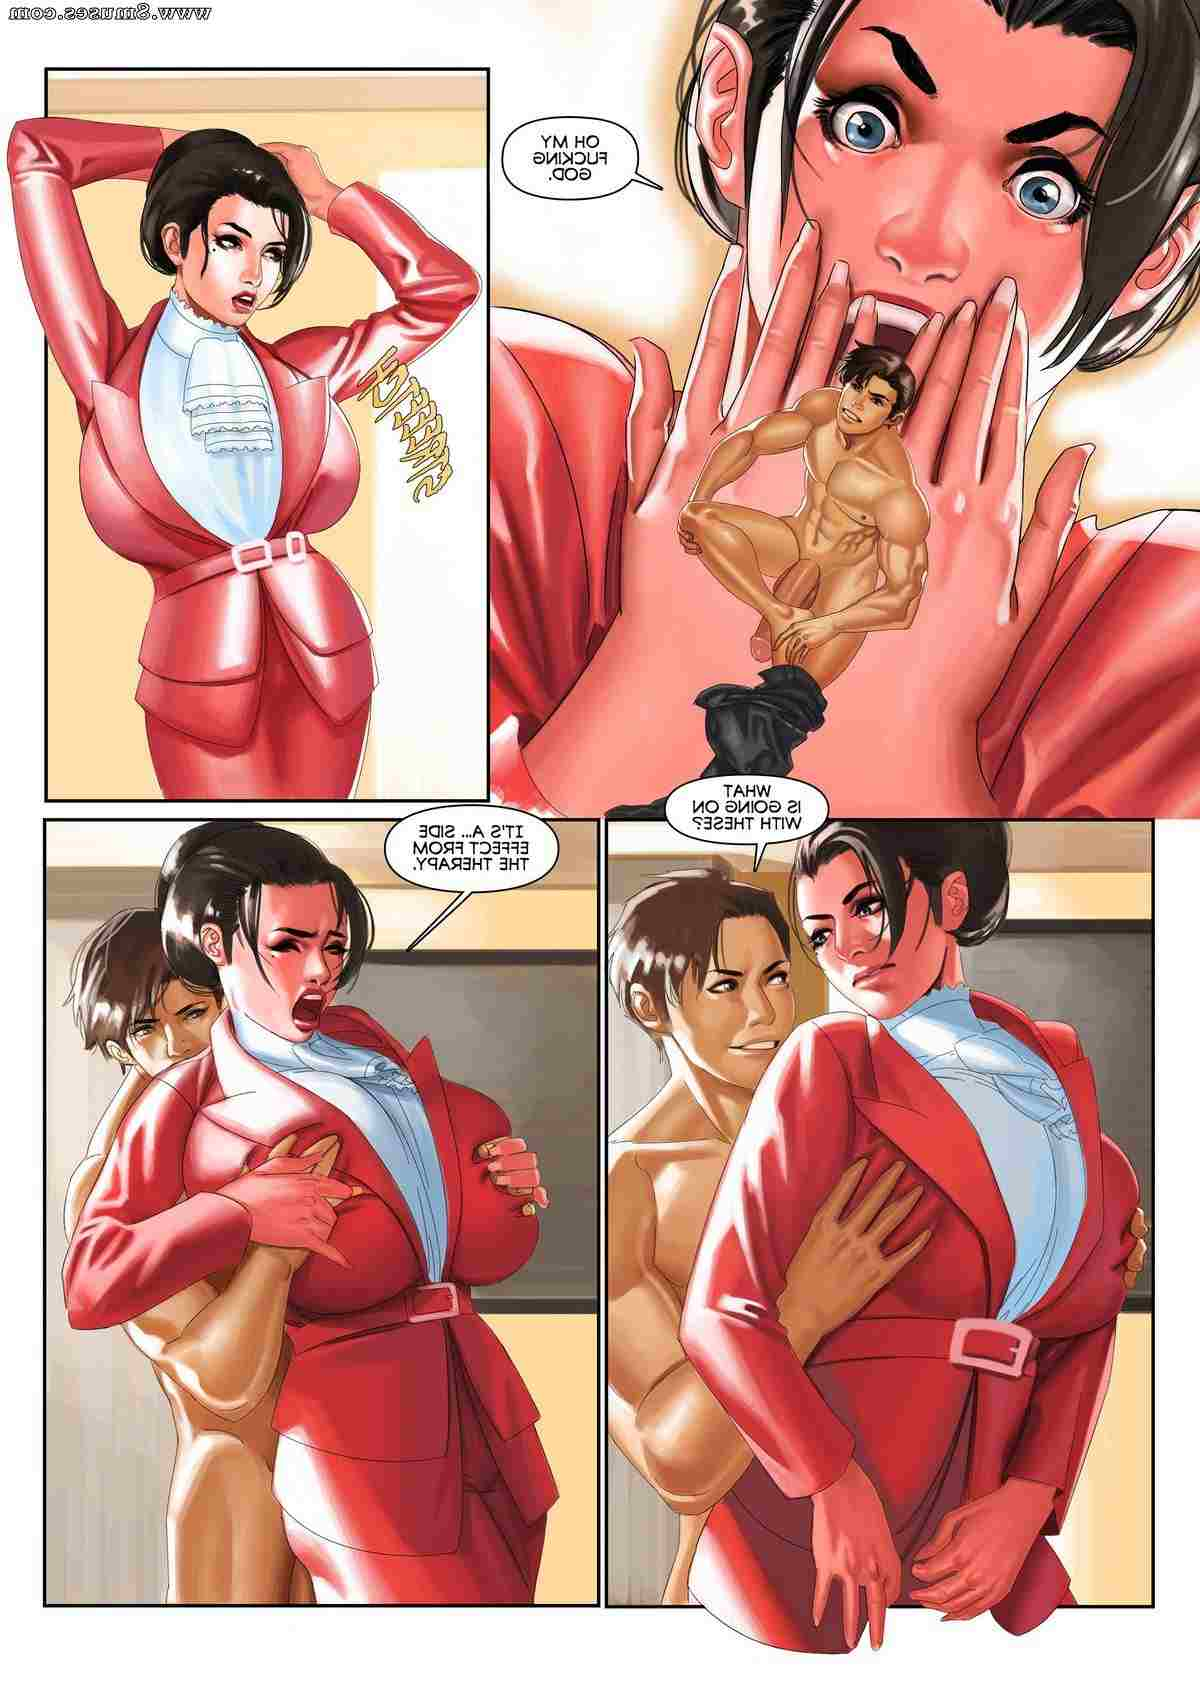 Expansionfan-Comics/Genetic-Destiny Genetic_Destiny__8muses_-_Sex_and_Porn_Comics_9.jpg